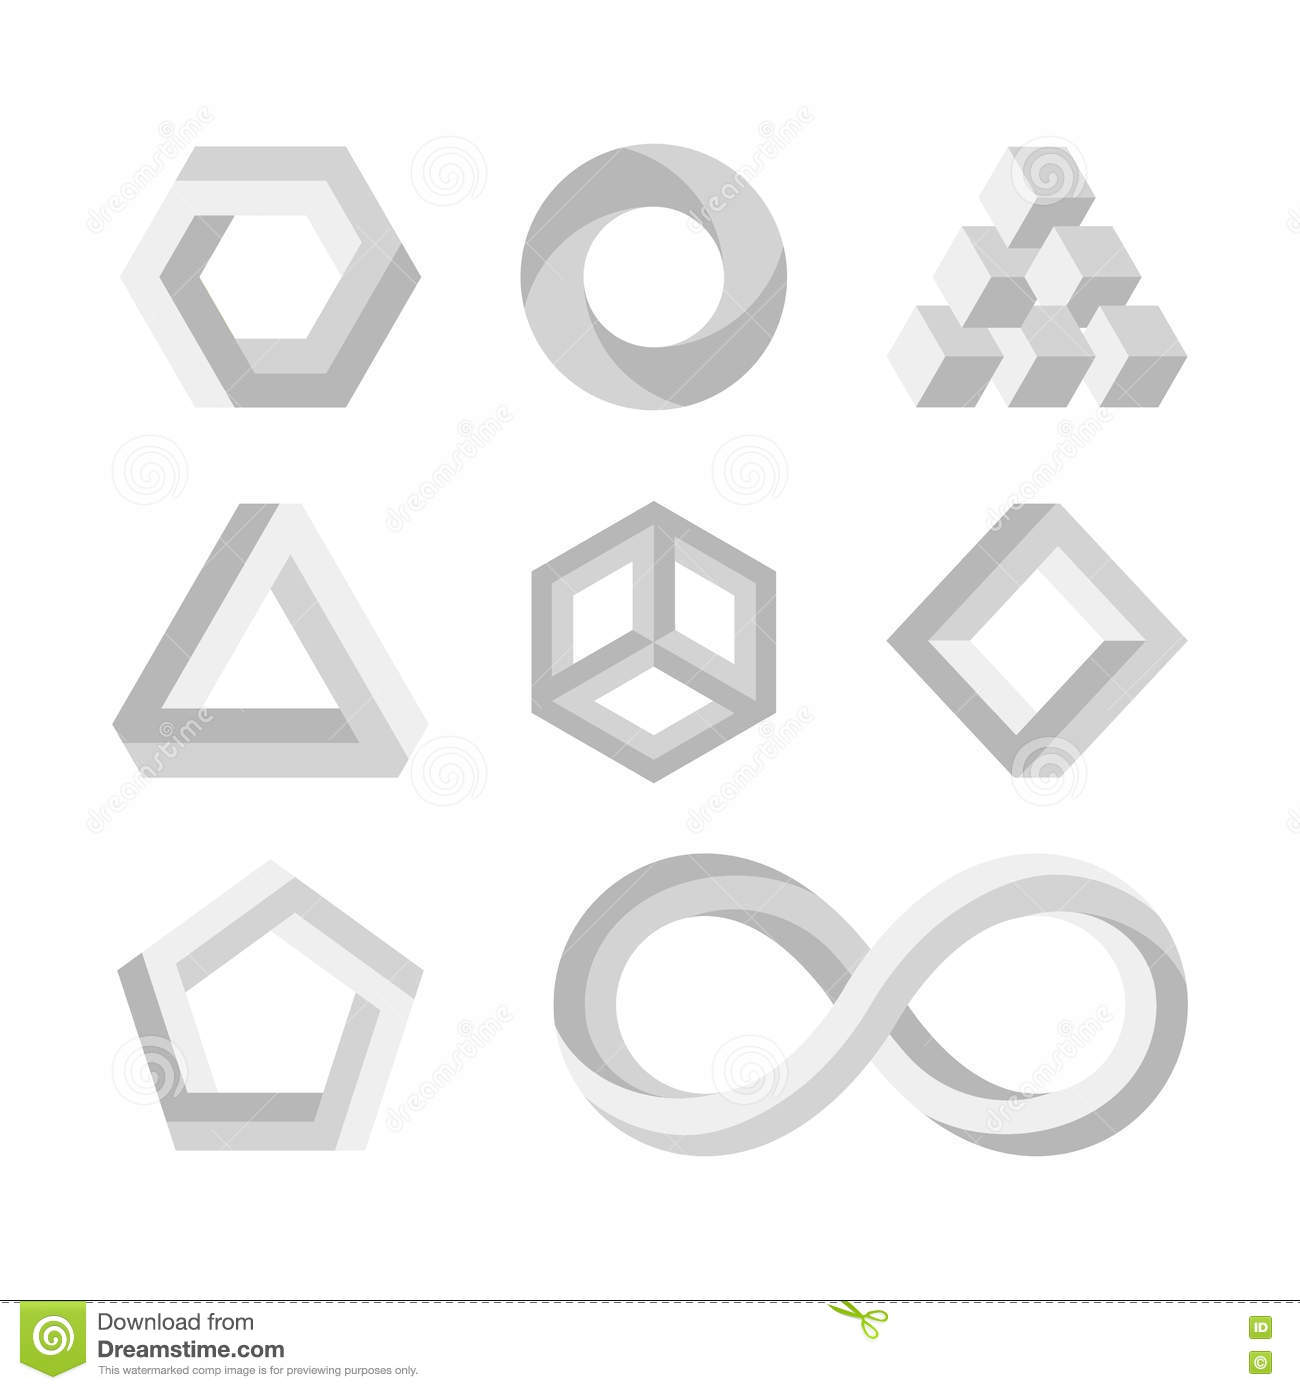 Paradox impossible shapes 3d twisted objects vector math symbols paradox impossible shapes 3d twisted objects vector math symbols buycottarizona Choice Image